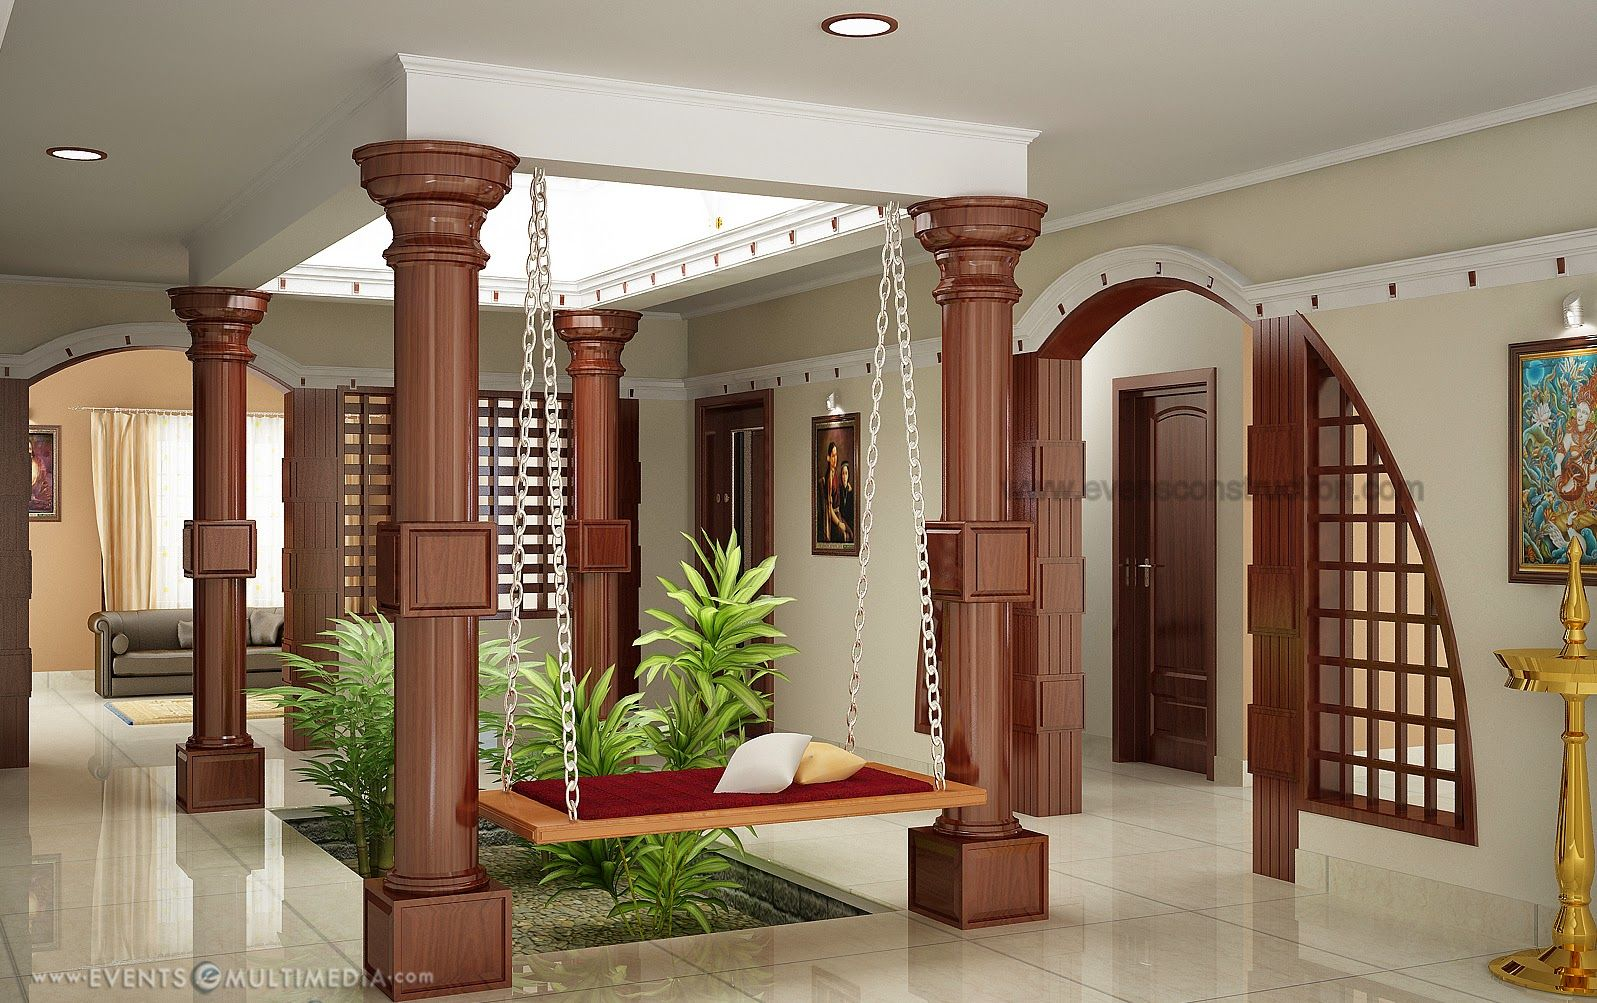 Interior design kerala google search inside and for Kerala model interior designs